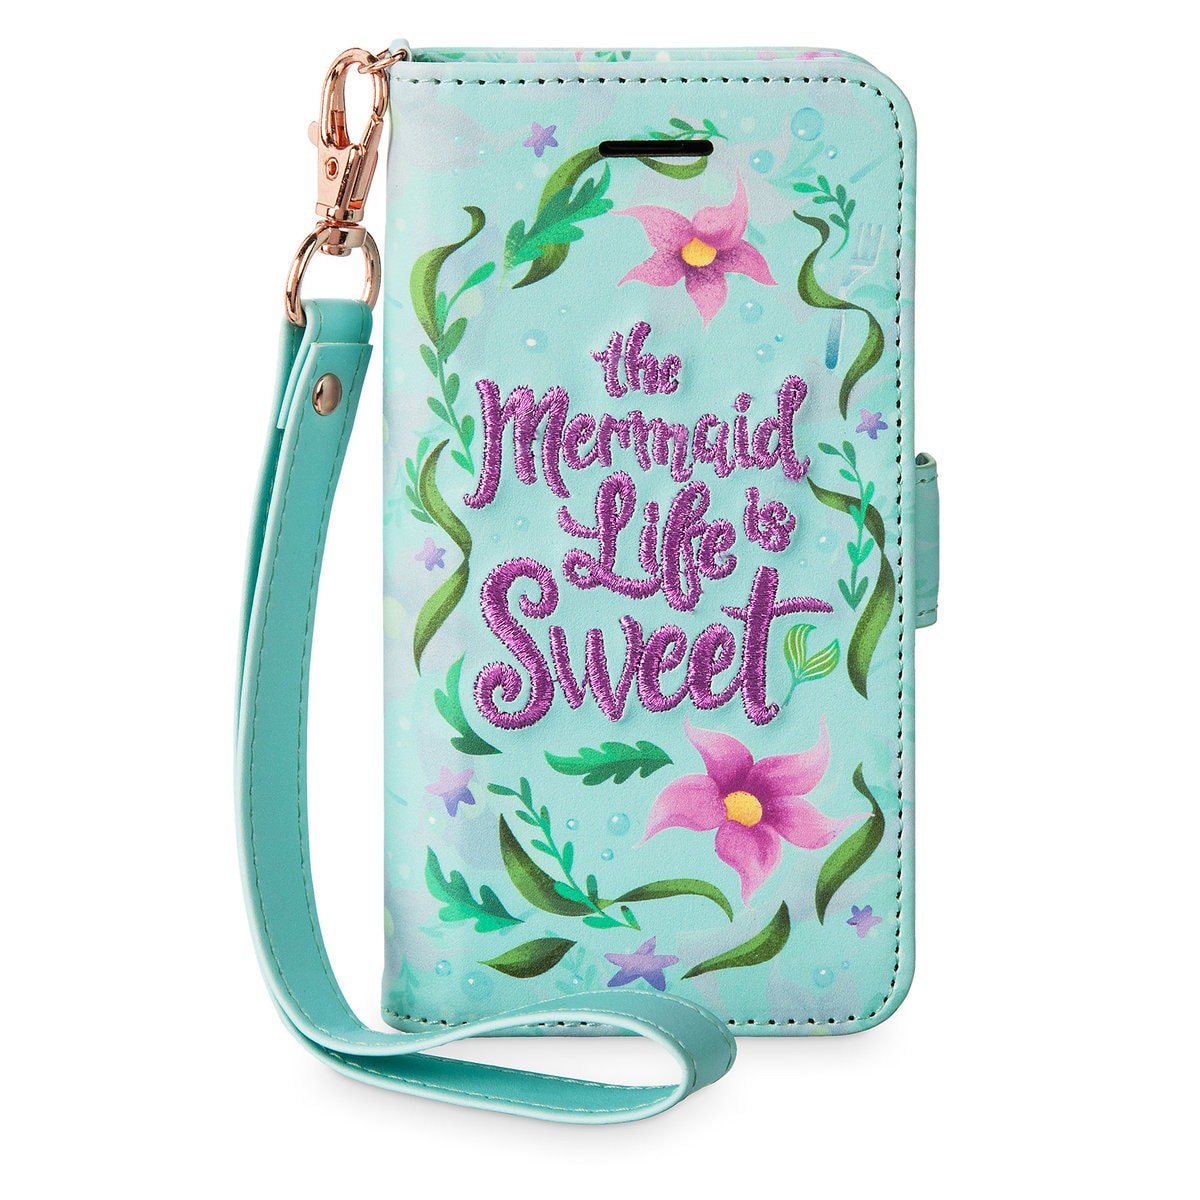 quality design c43b6 259d3 Ariel Wristlet iPhone 6s/7/8 Case - The Little Mermaid